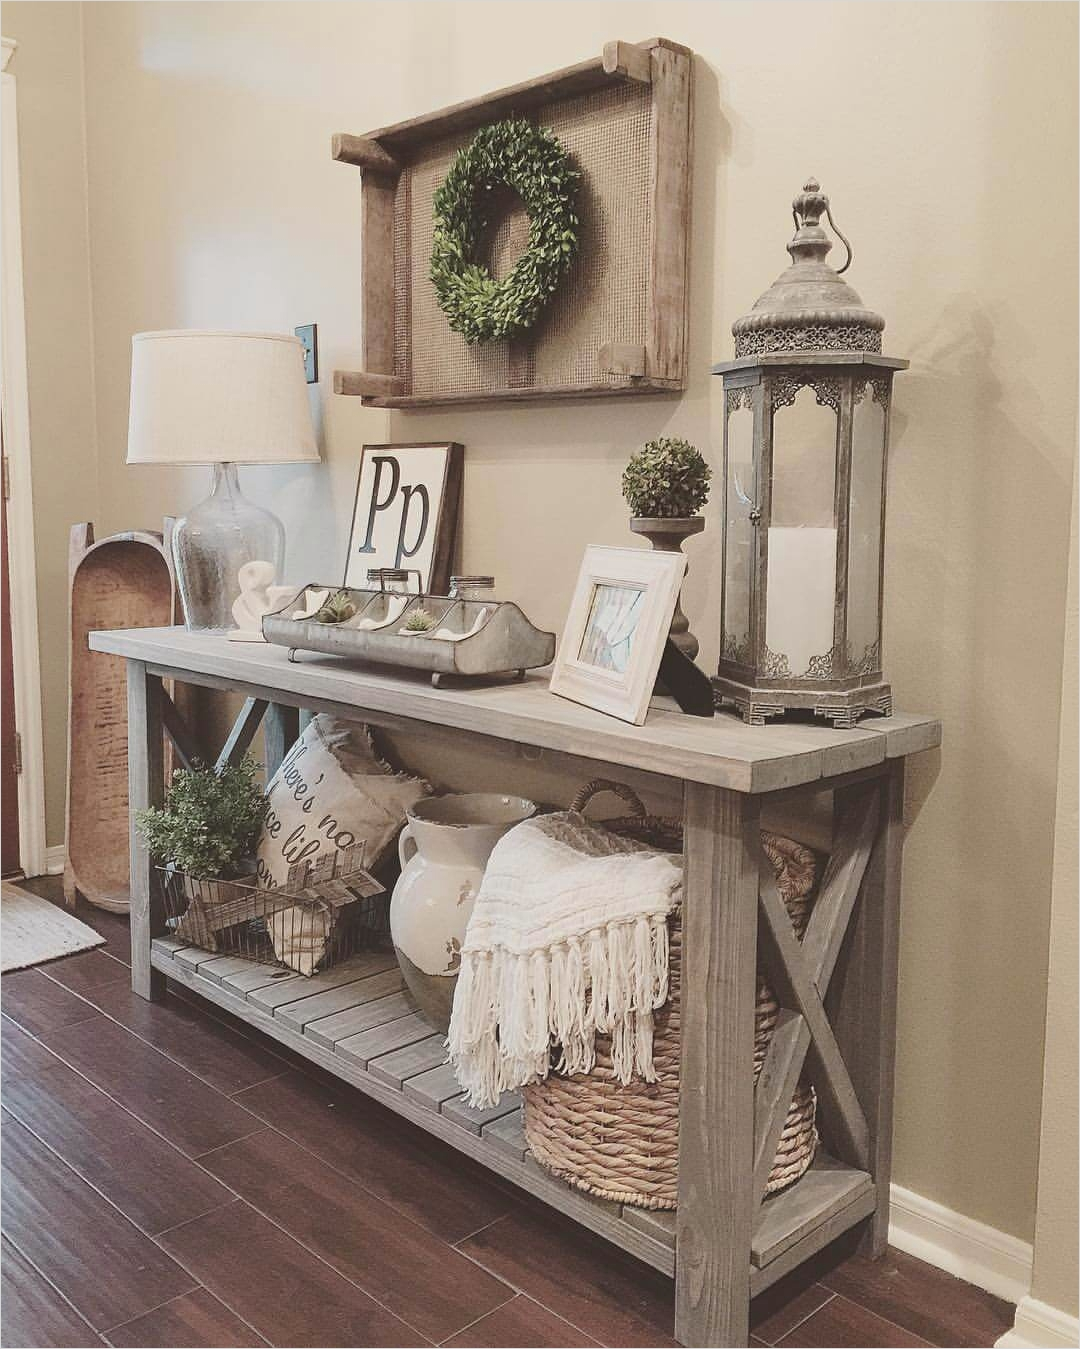 39 Stunning Farmhouse Hallway Decorating Ideas 13 37 Best Entry Table Ideas Decorations and Designs for 2017 5